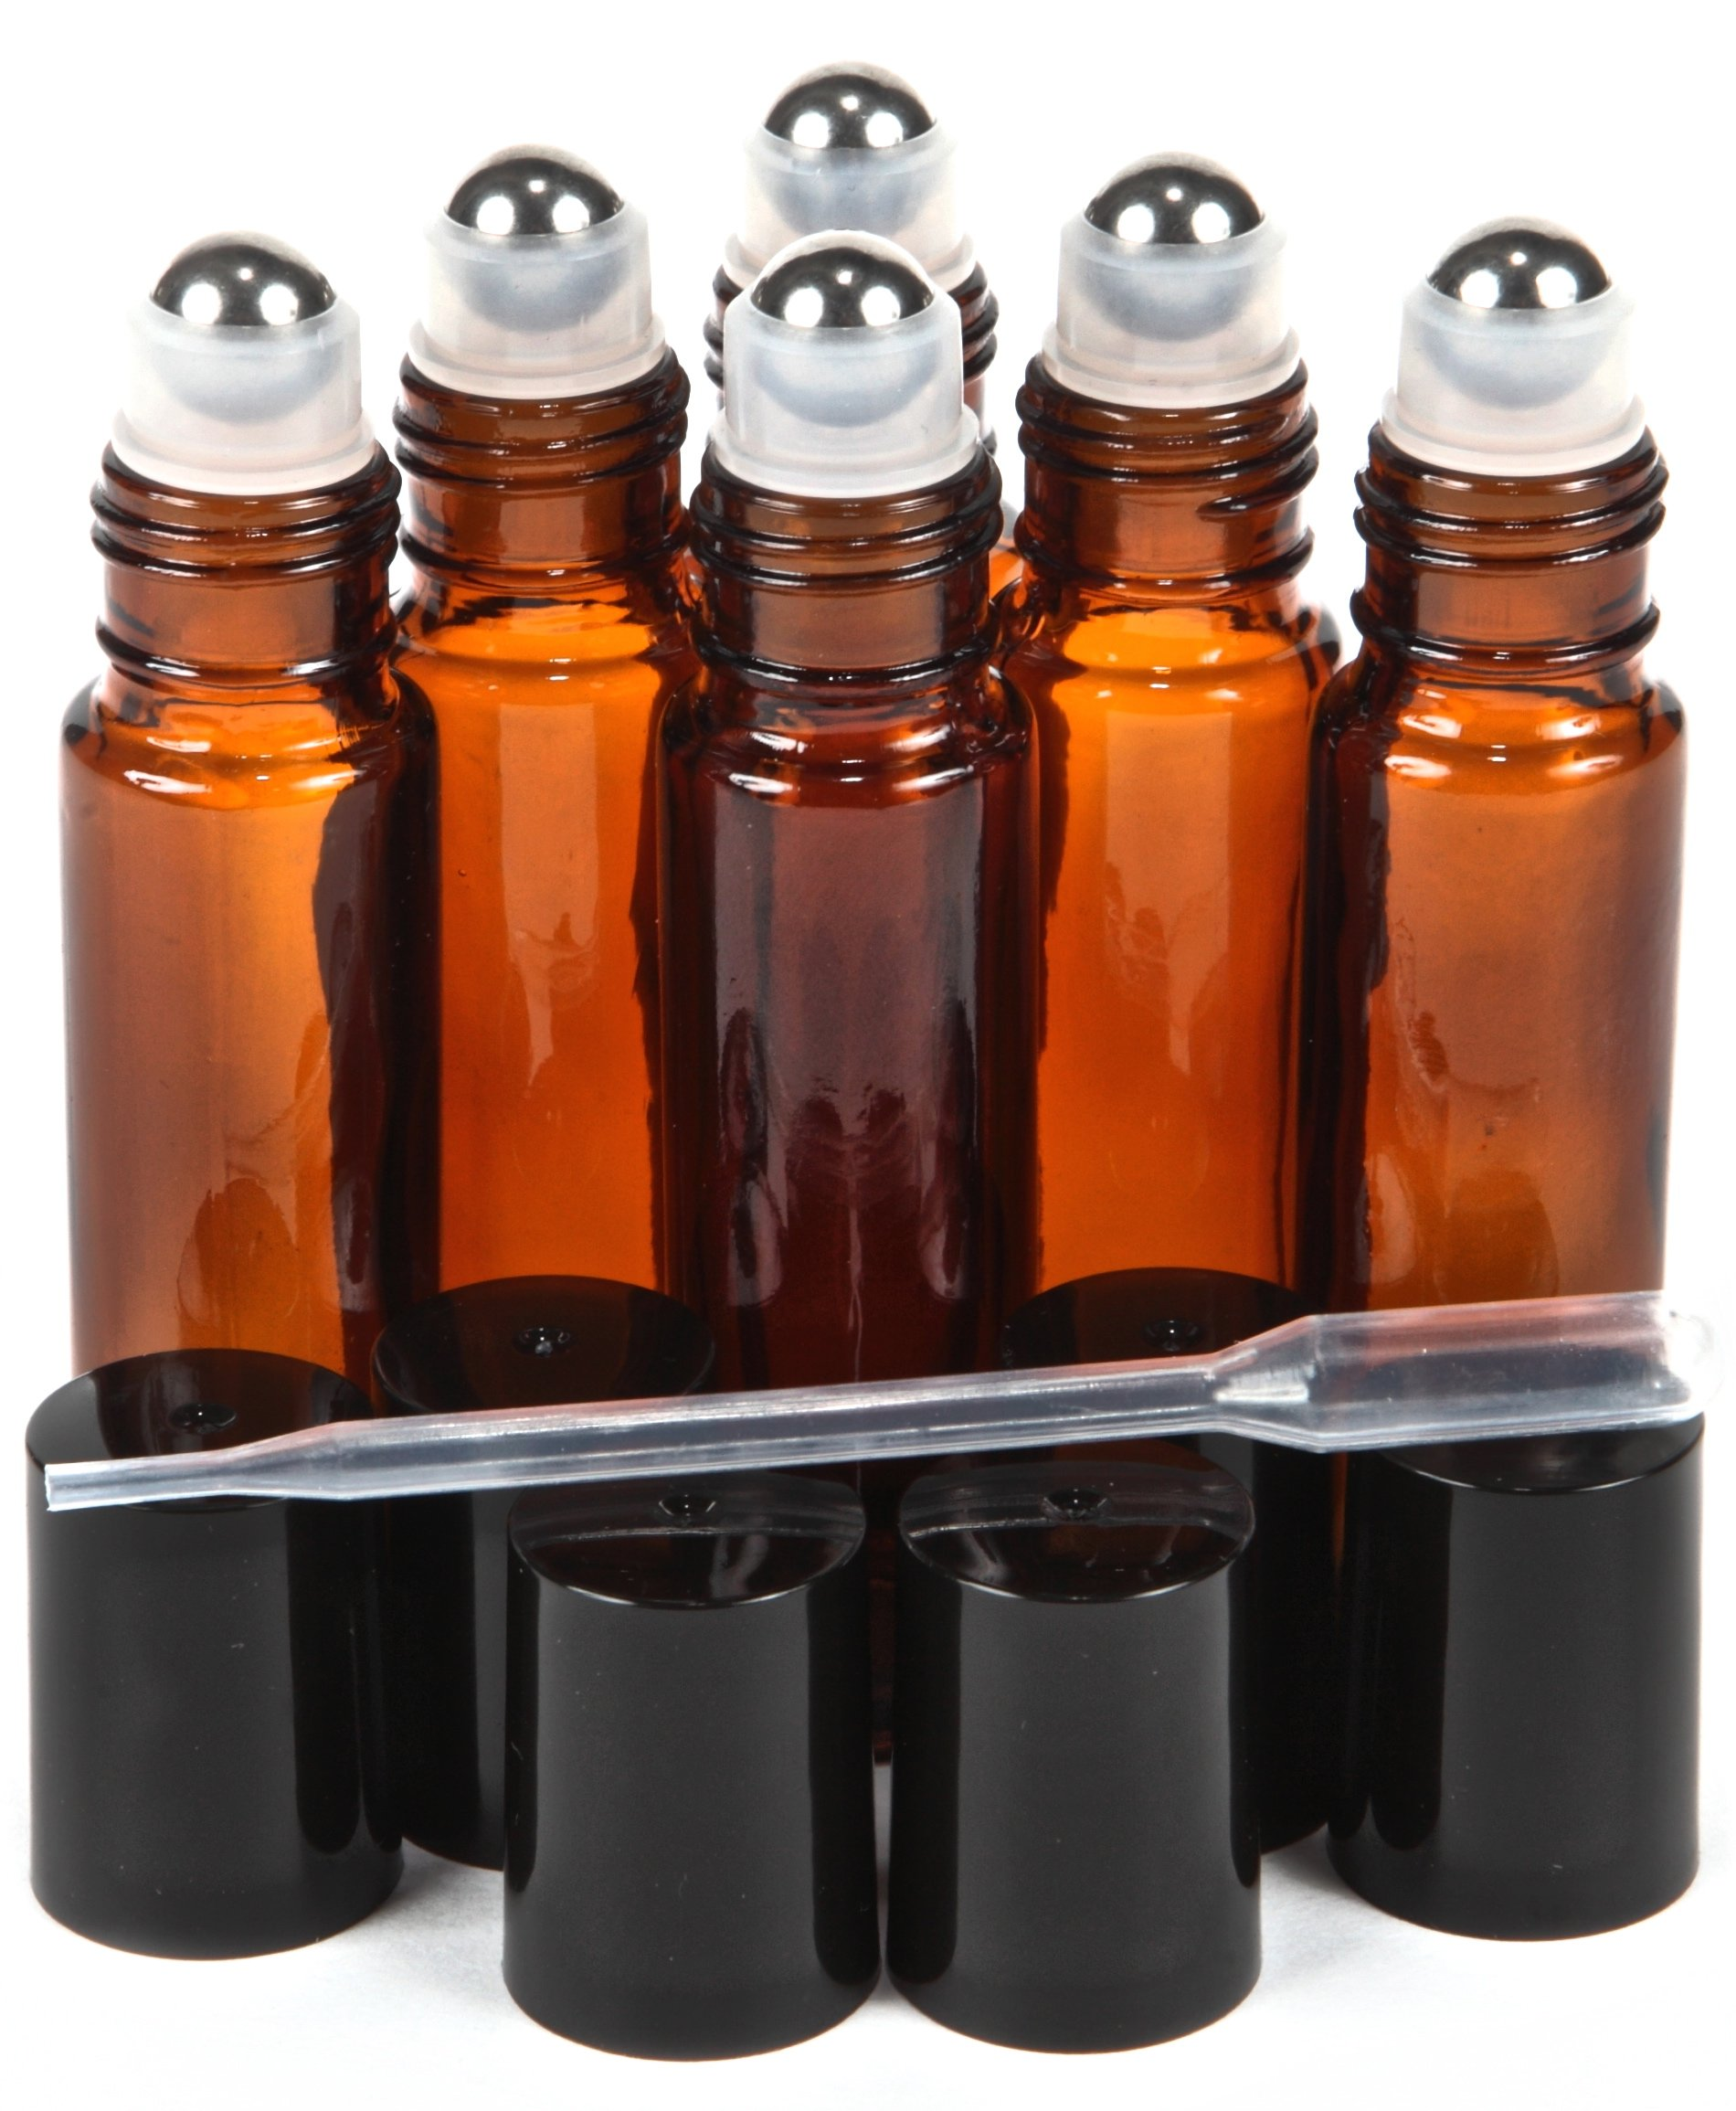 Vivaplex, 6, Amber, 10 ml Glass Roll-on Bottles with Stainless Steel Roller Balls - .5 ml Dropper included